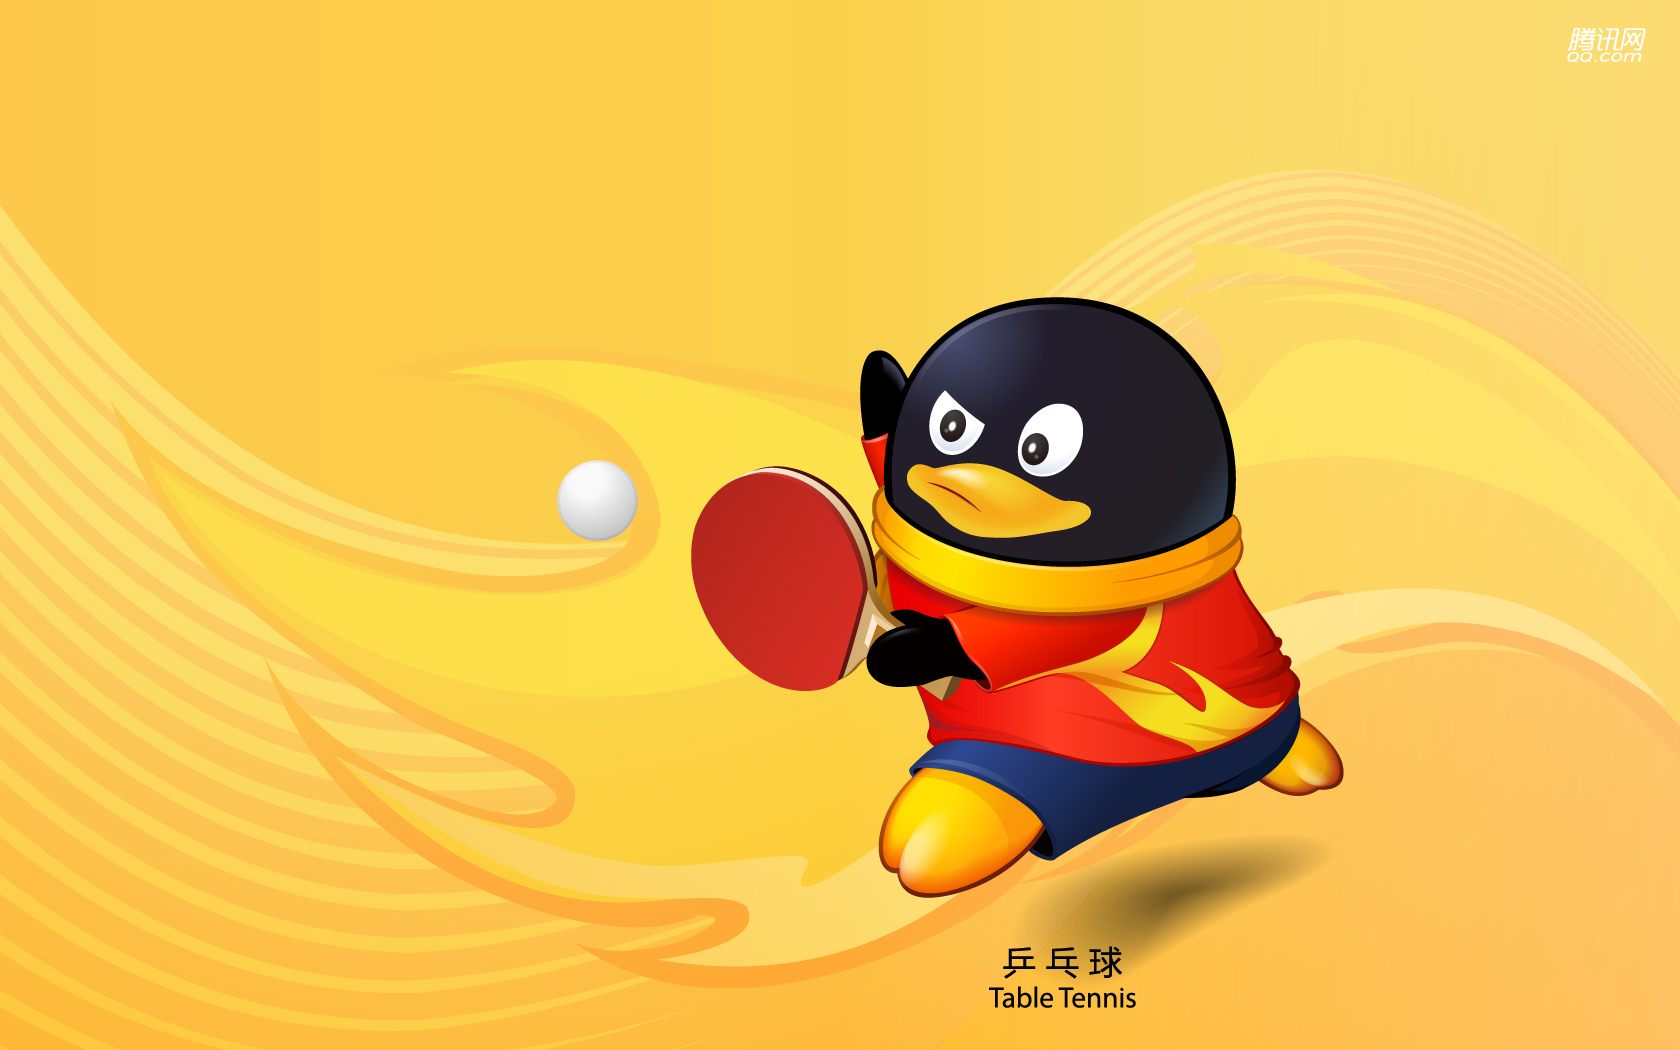 QQ Games Wallpapers 14857